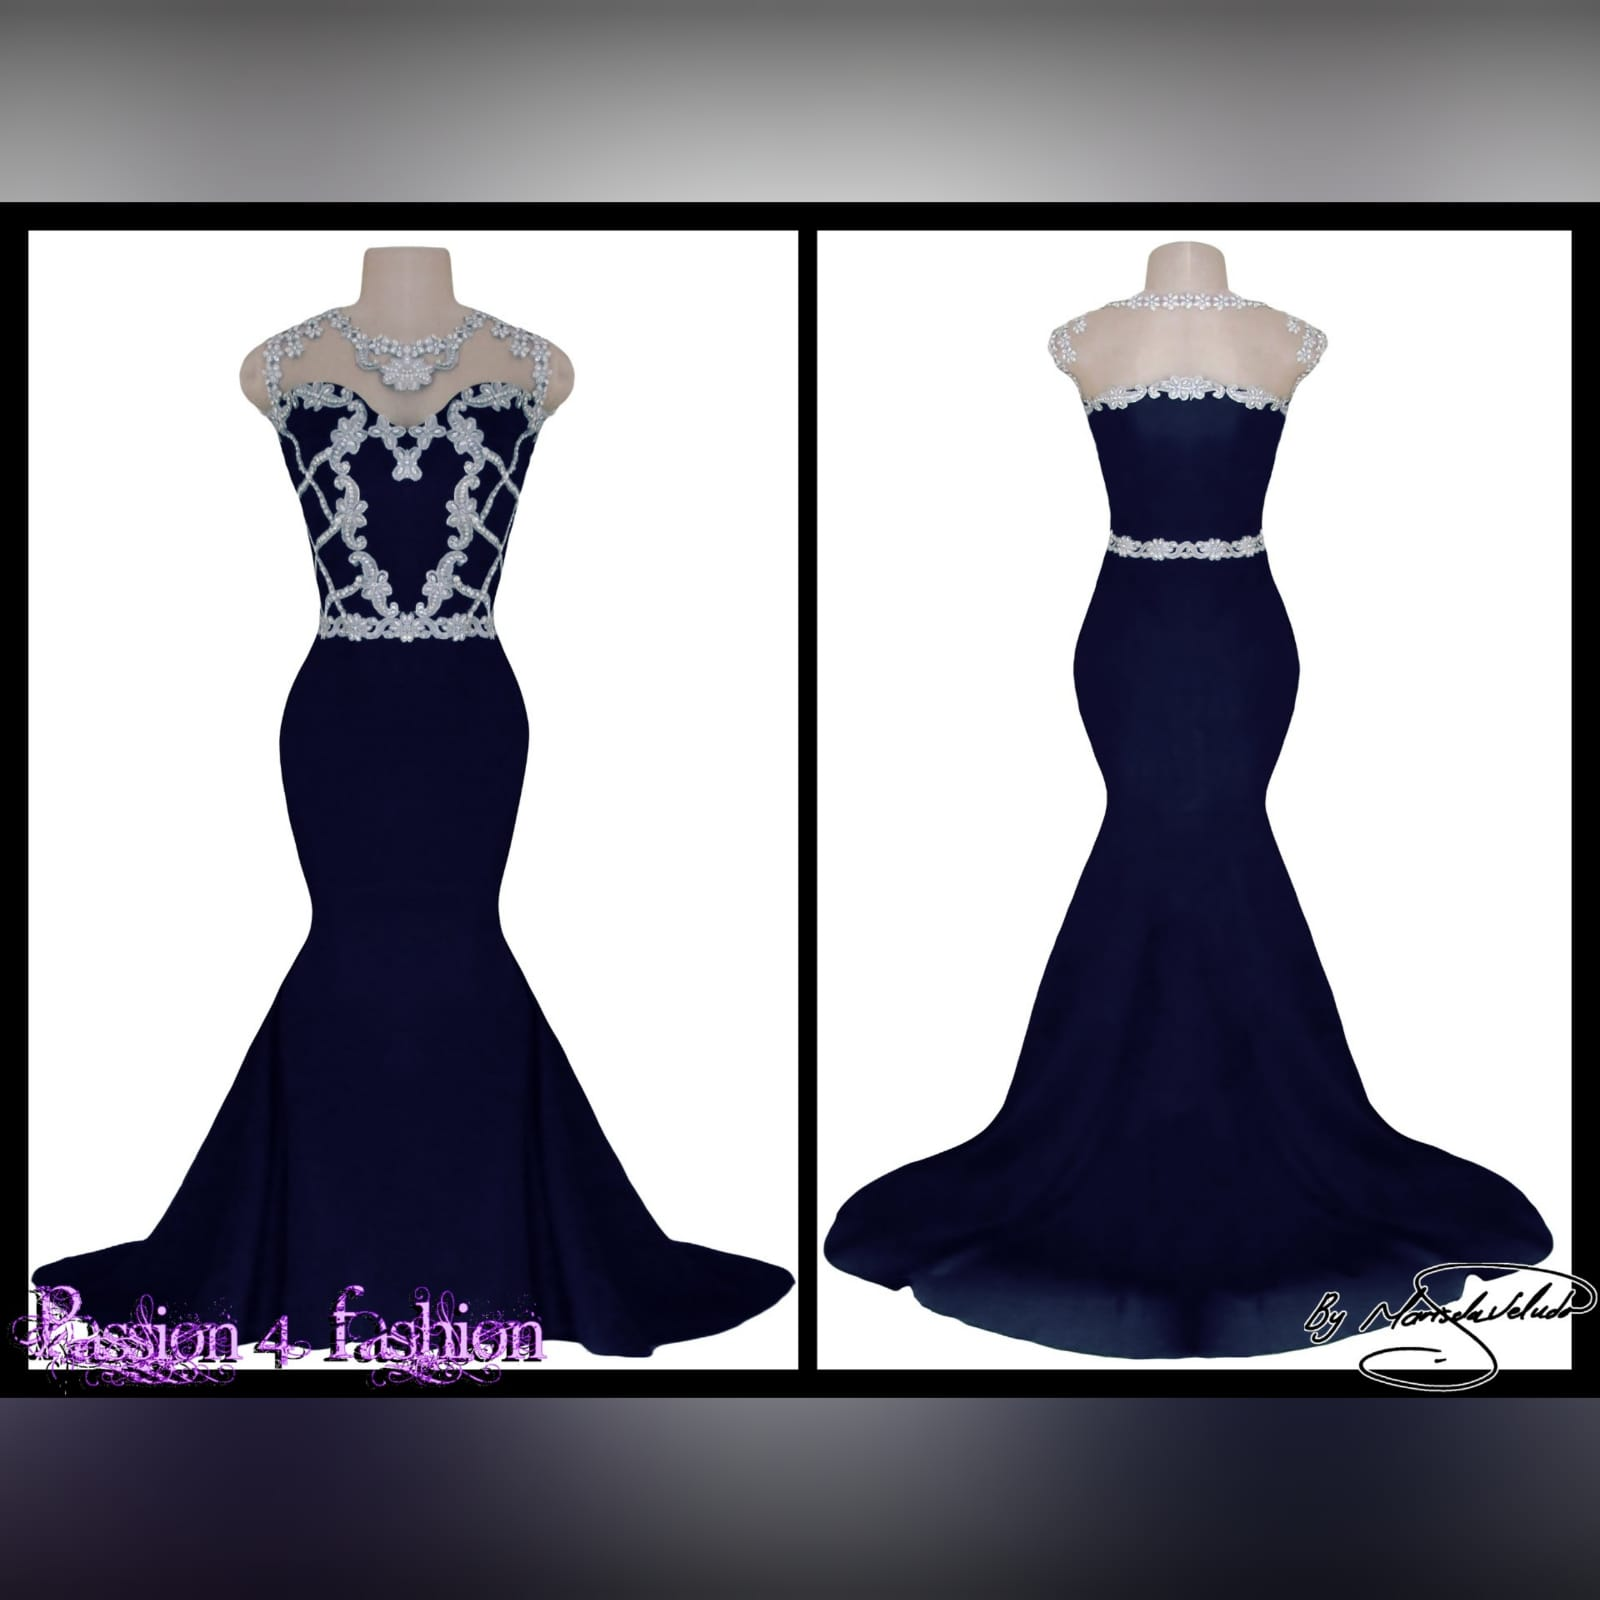 Navy blue & silver soft mermaid formal dress 3 navy blue & silver soft mermaid formal dress. Bodice detailed in silver bling. With a waist belt effect. An illusion neckline and a train.